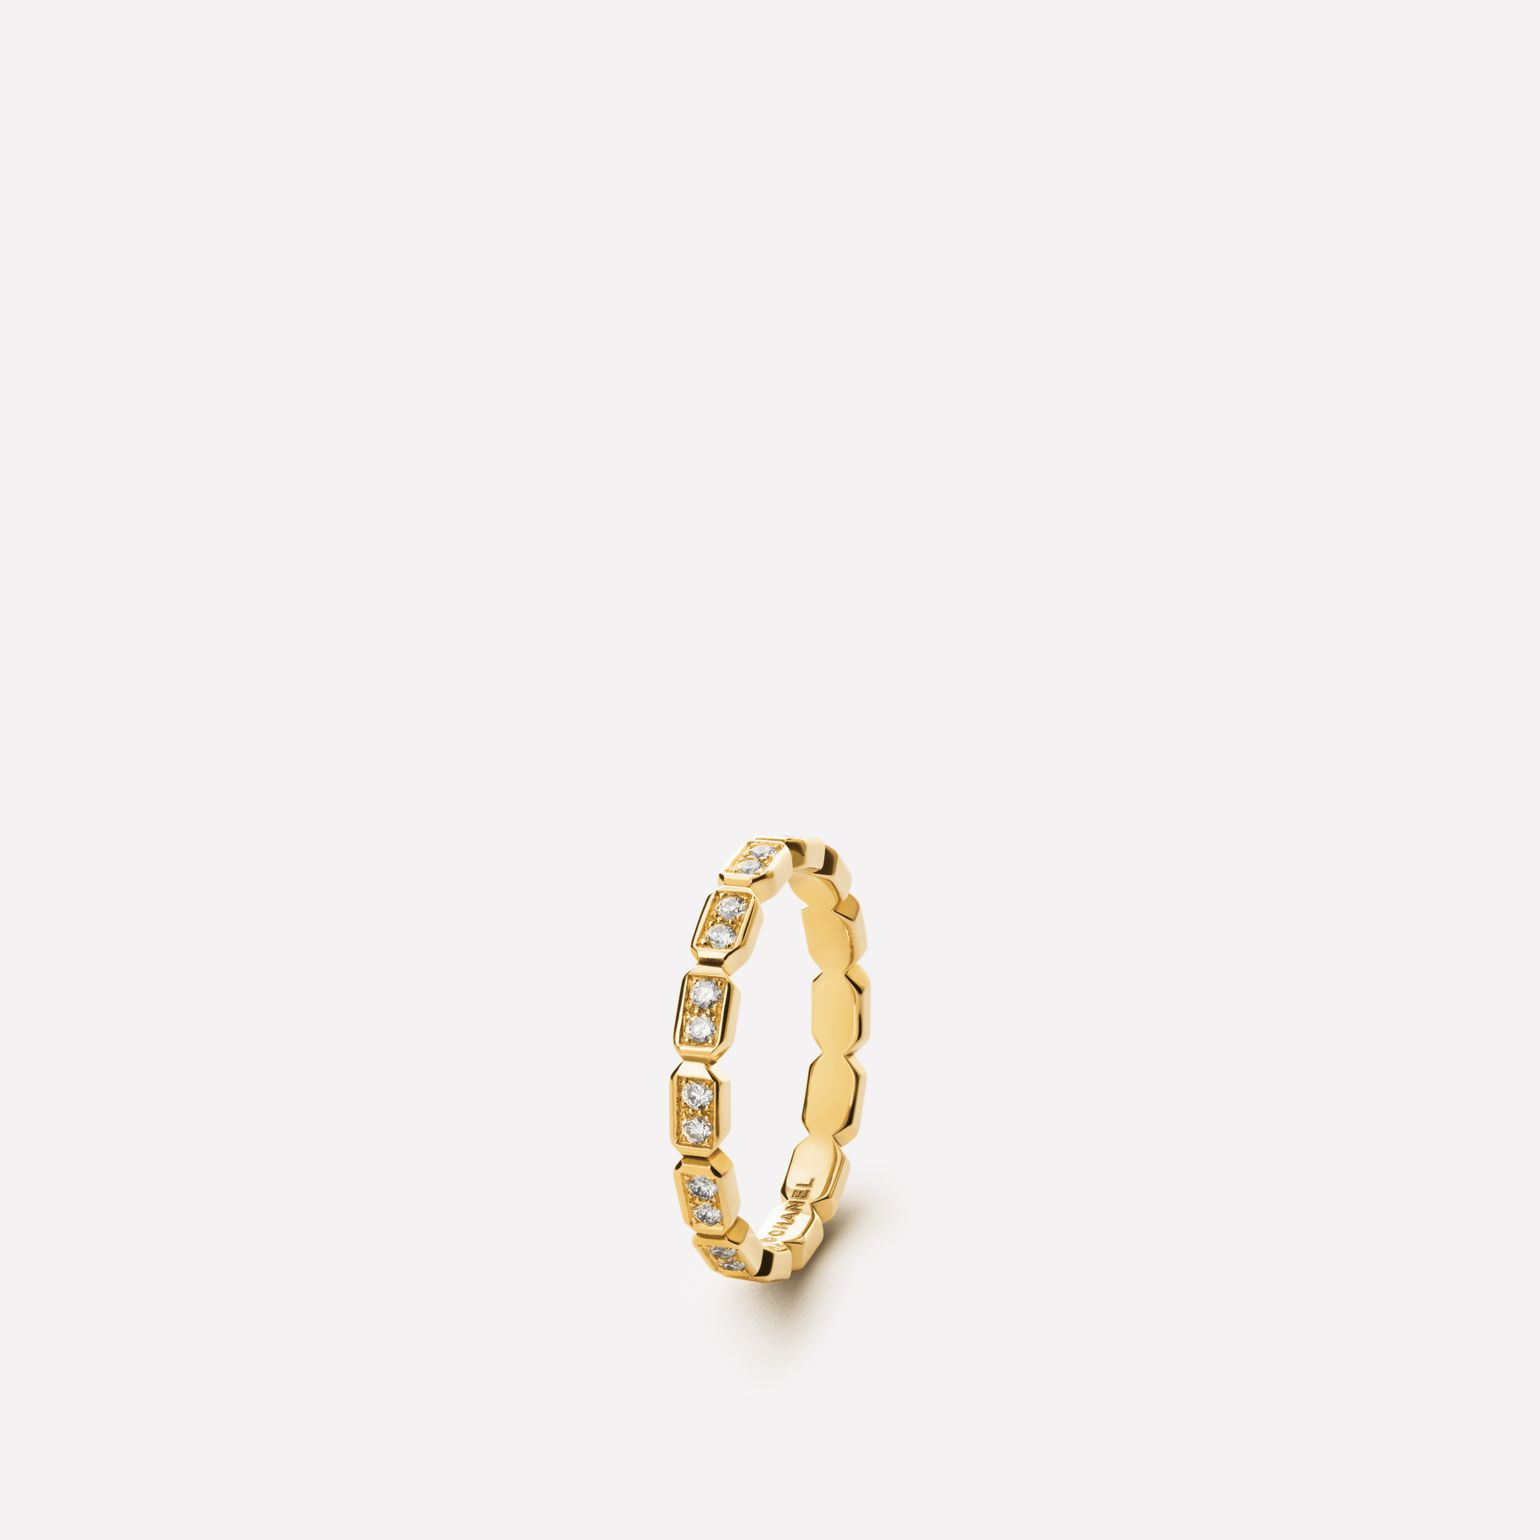 Baroque Ring Baroque ring in 18K yellow gold and diamonds